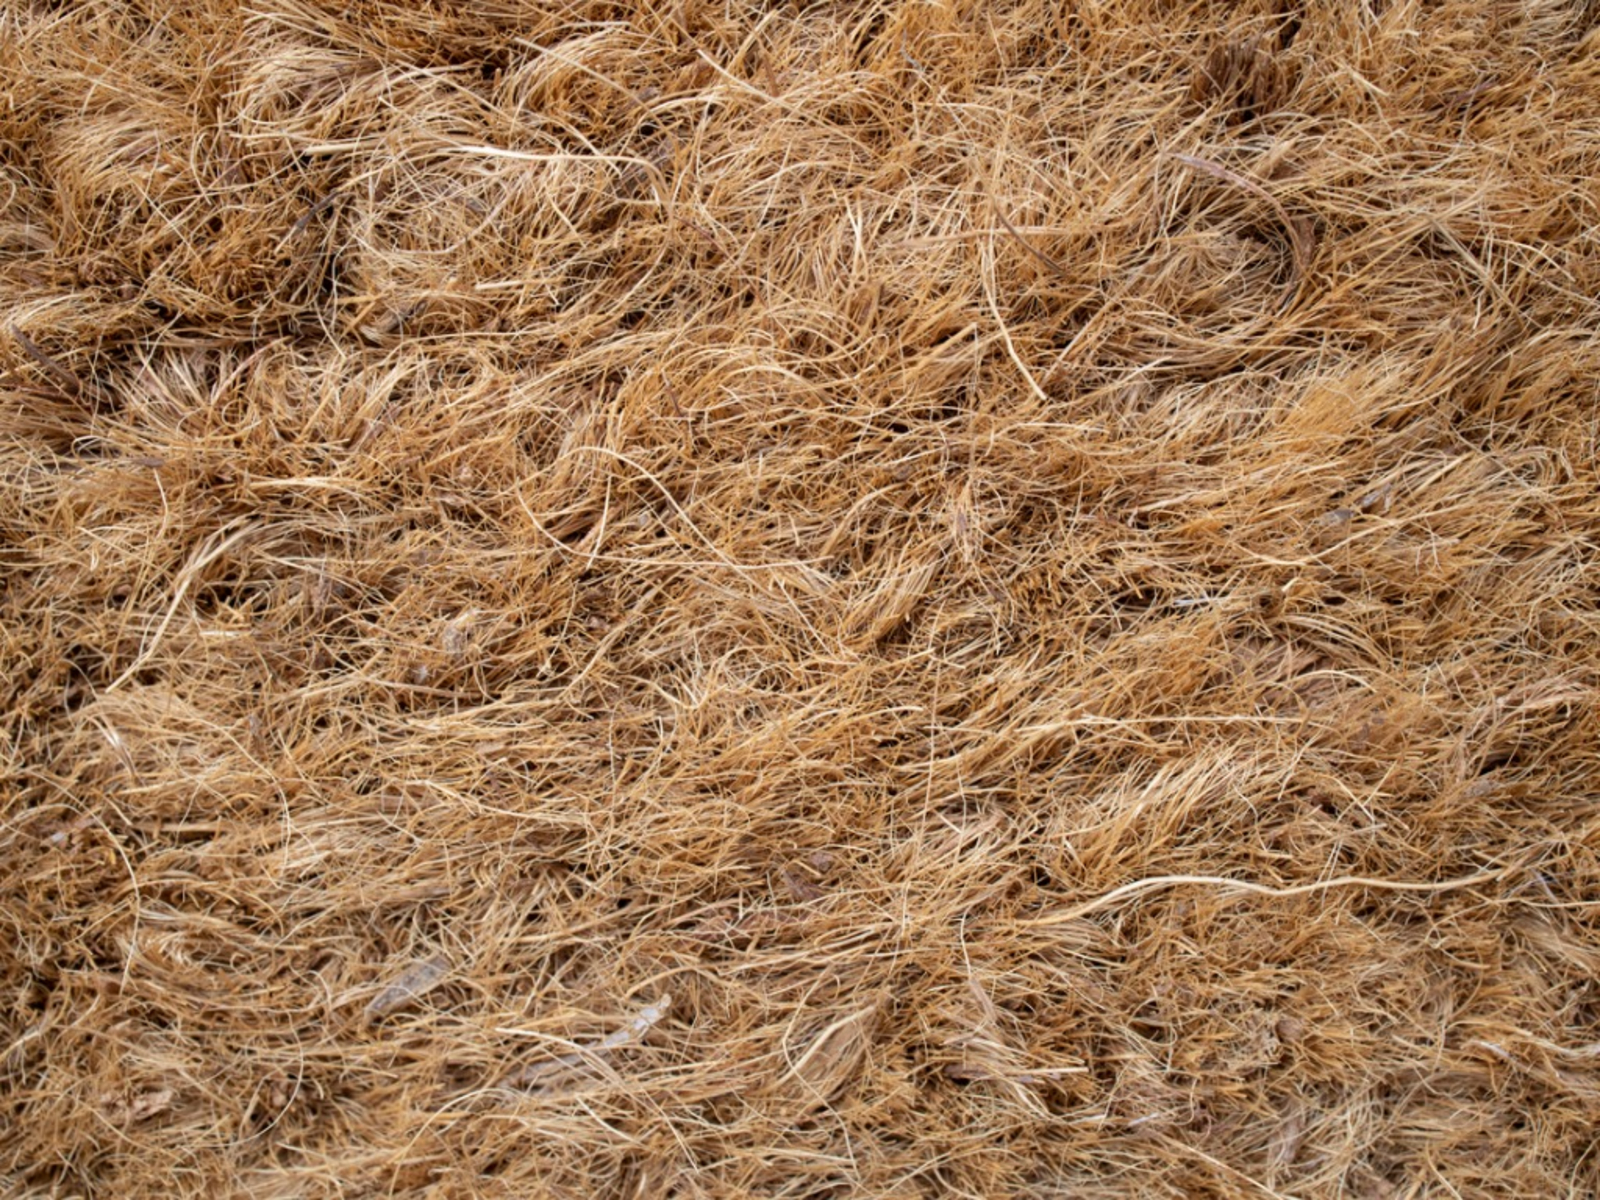 Coconut Coir Mulch Benefits - Suggestions For Coir Mulch Uses In The Garden